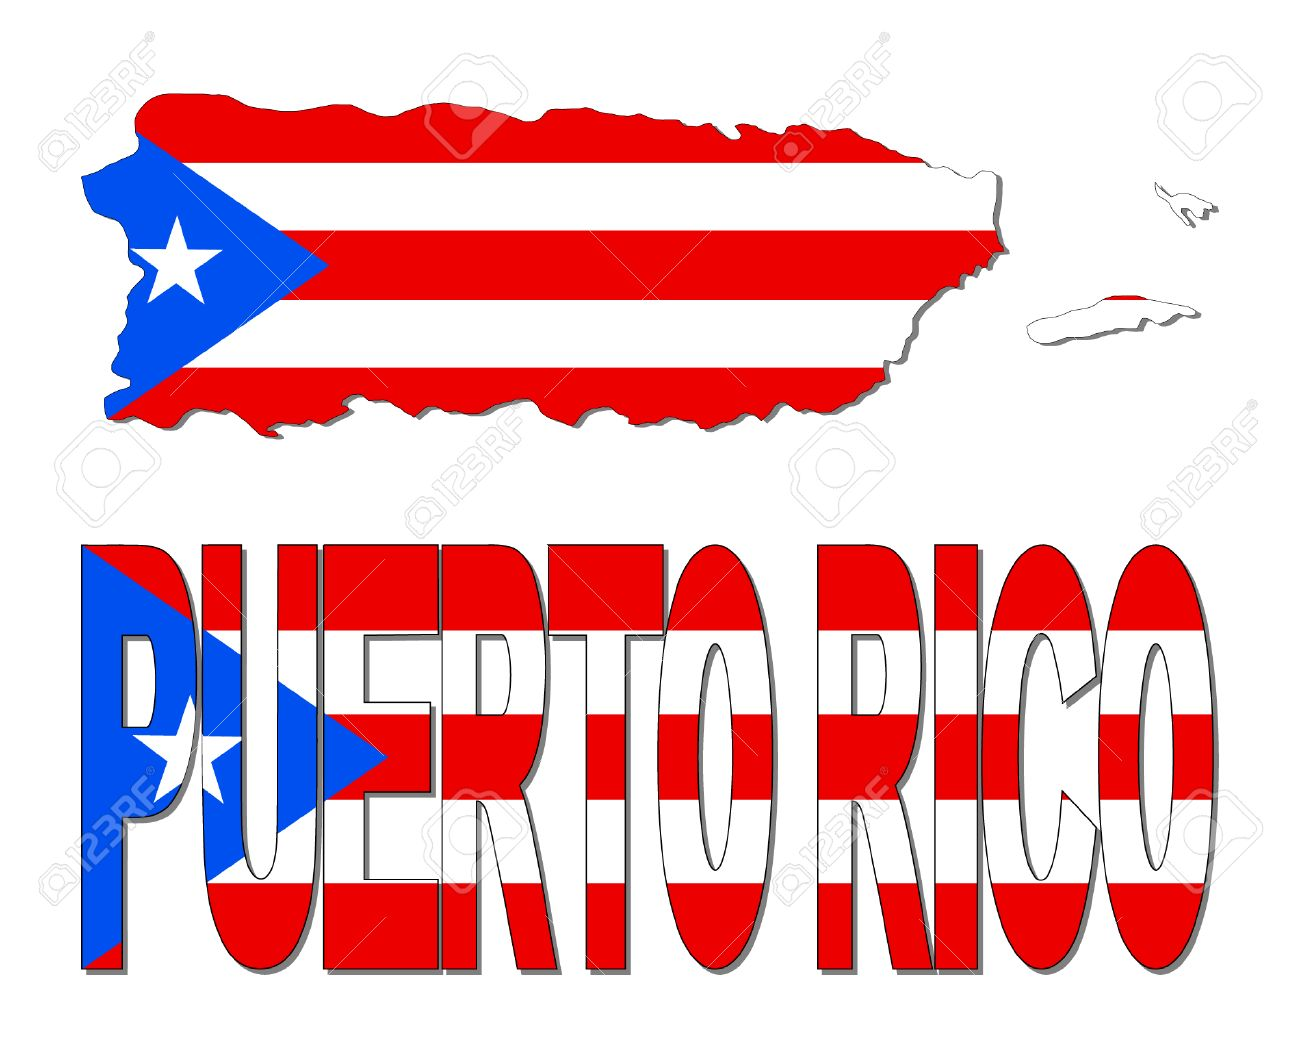 Puerto Rico Map Clipart & Free Clip Art Images #25991.